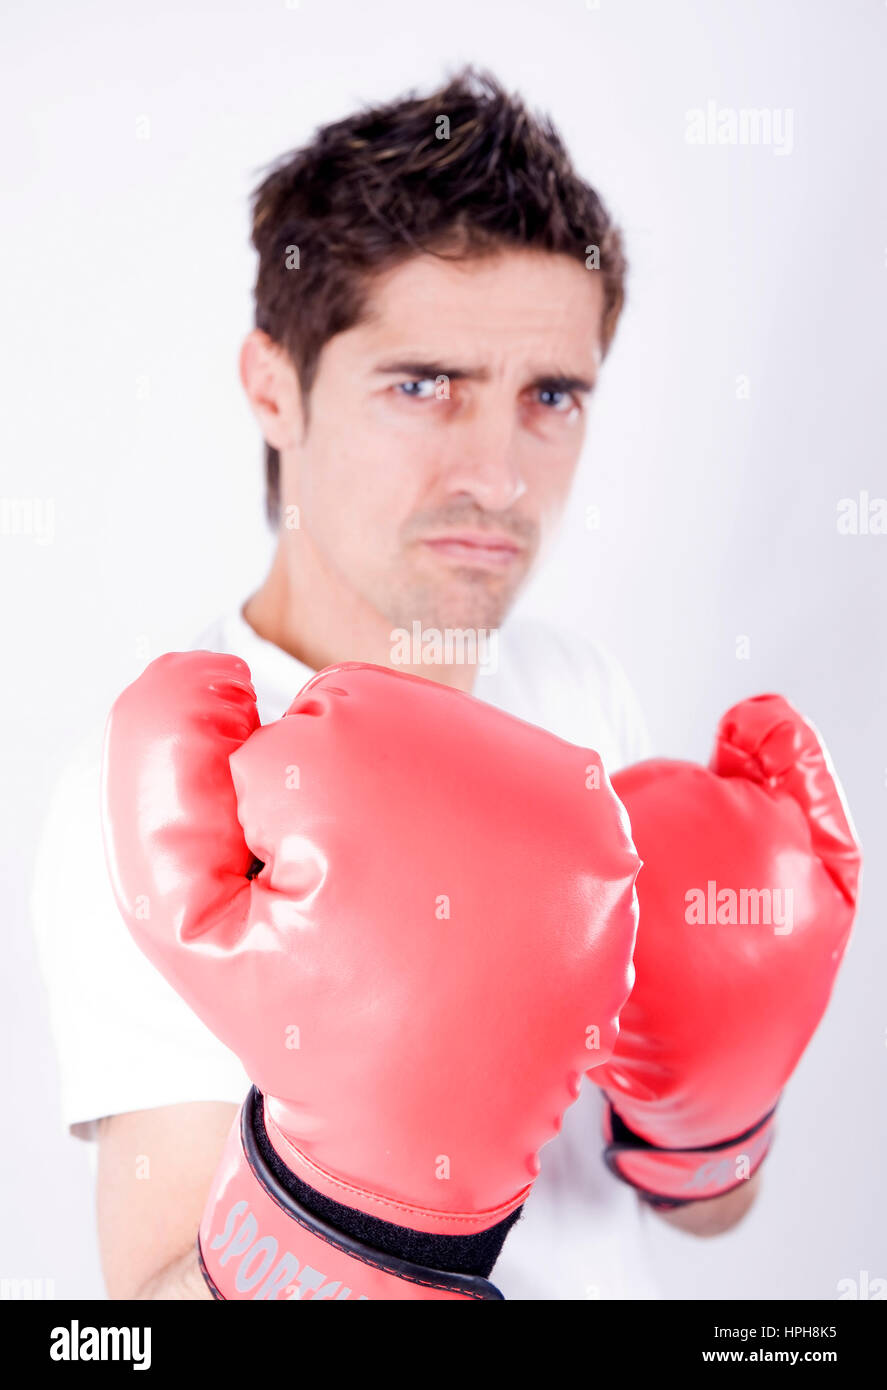 Mann mit Boxhandschuhen - man with boxing gloves, Model released Stock Photo